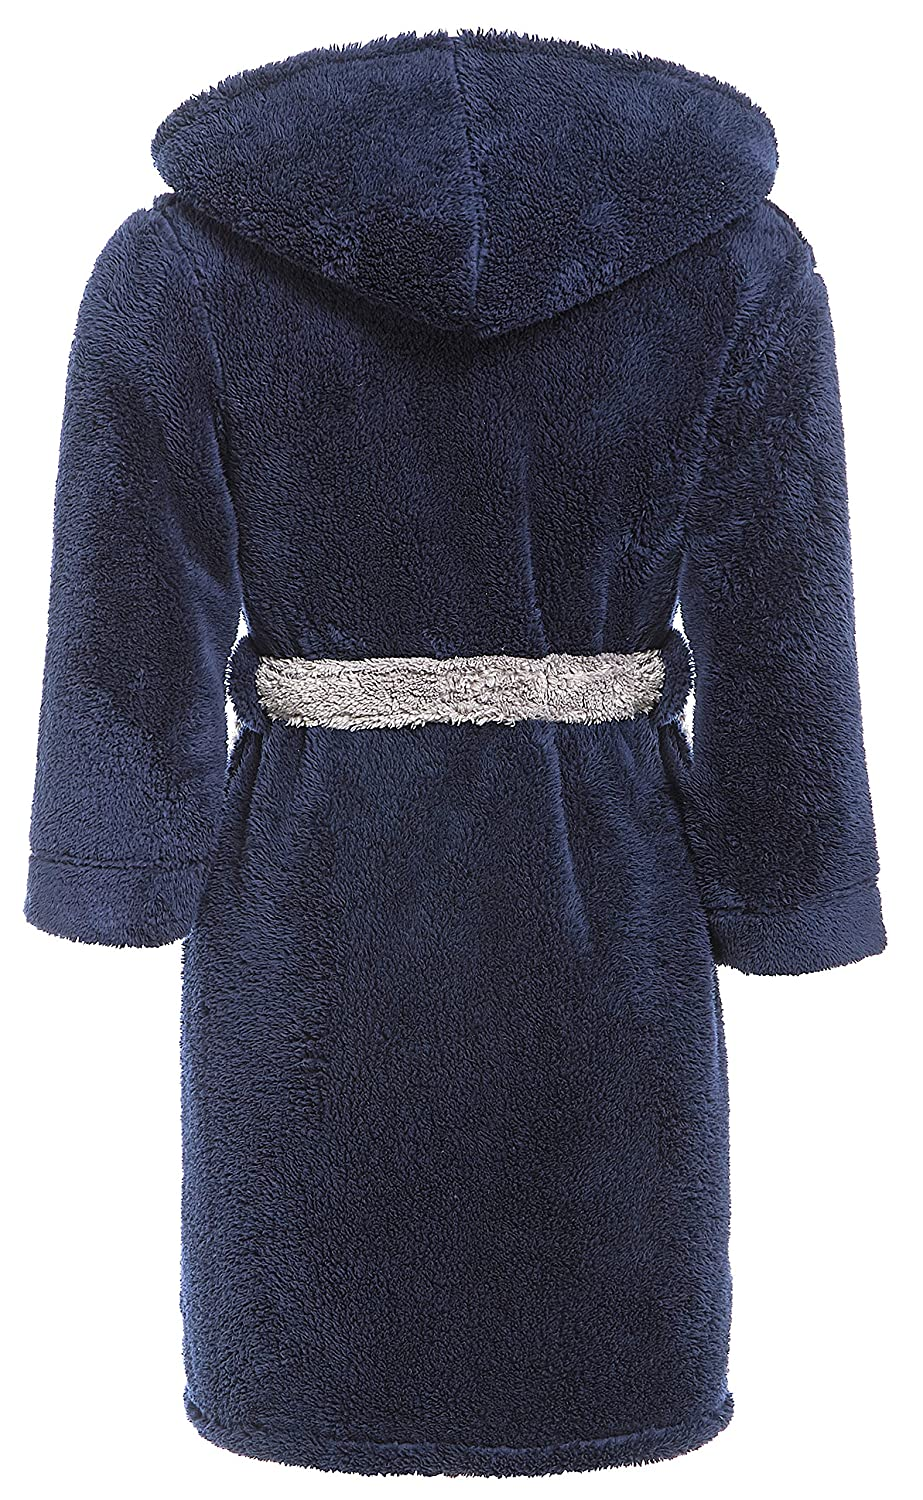 Navy Blue Grey Slumber Hut/® Luxury Boys Fleece Hooded Dressing Gown Warm Shaggy Snuggle Childrens Robe Size 7 up to 13 Years